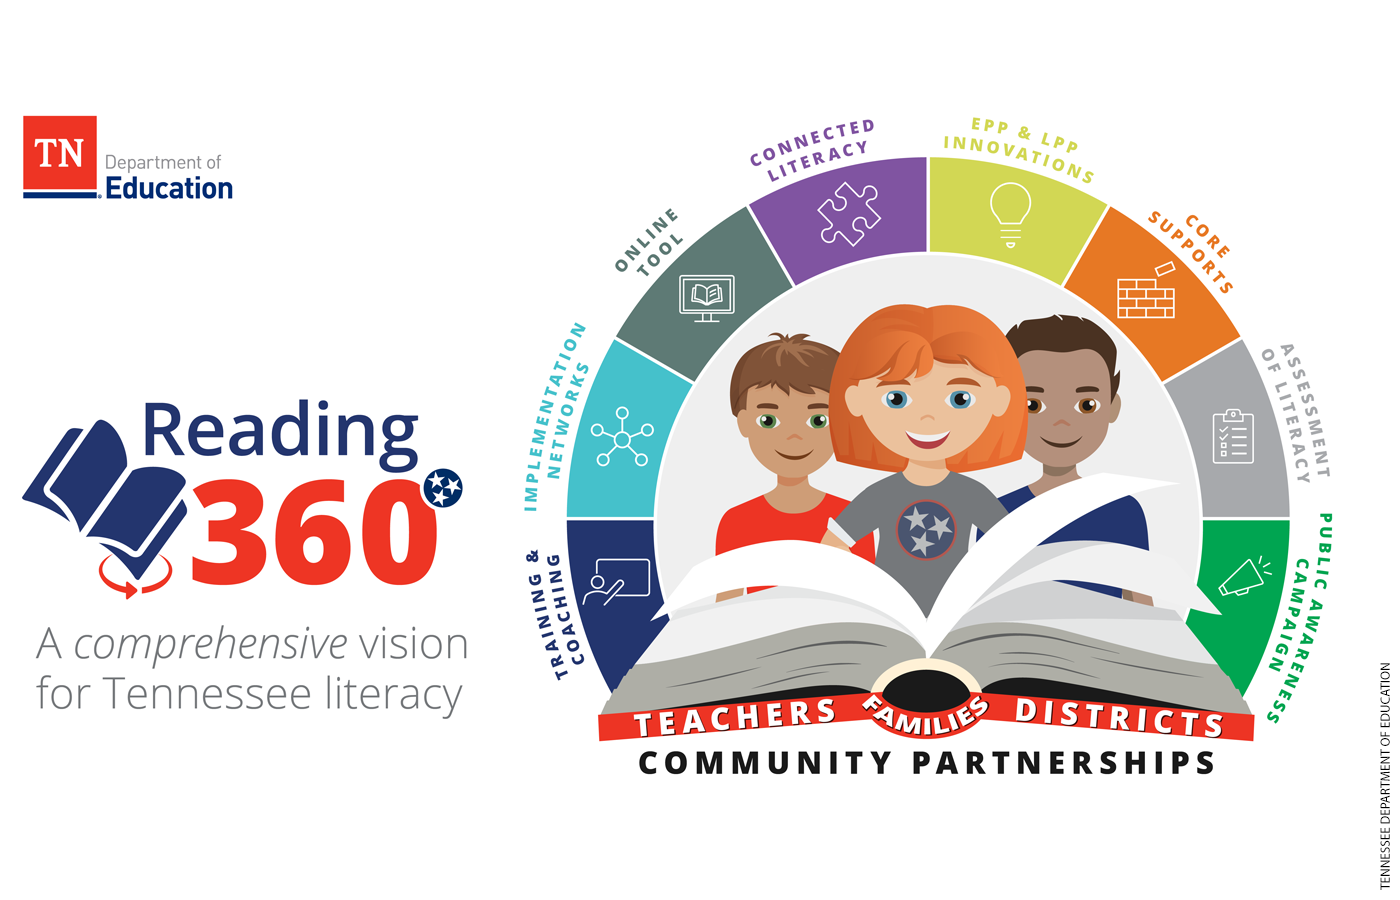 Illustration of the Tennessee Reading 360 program